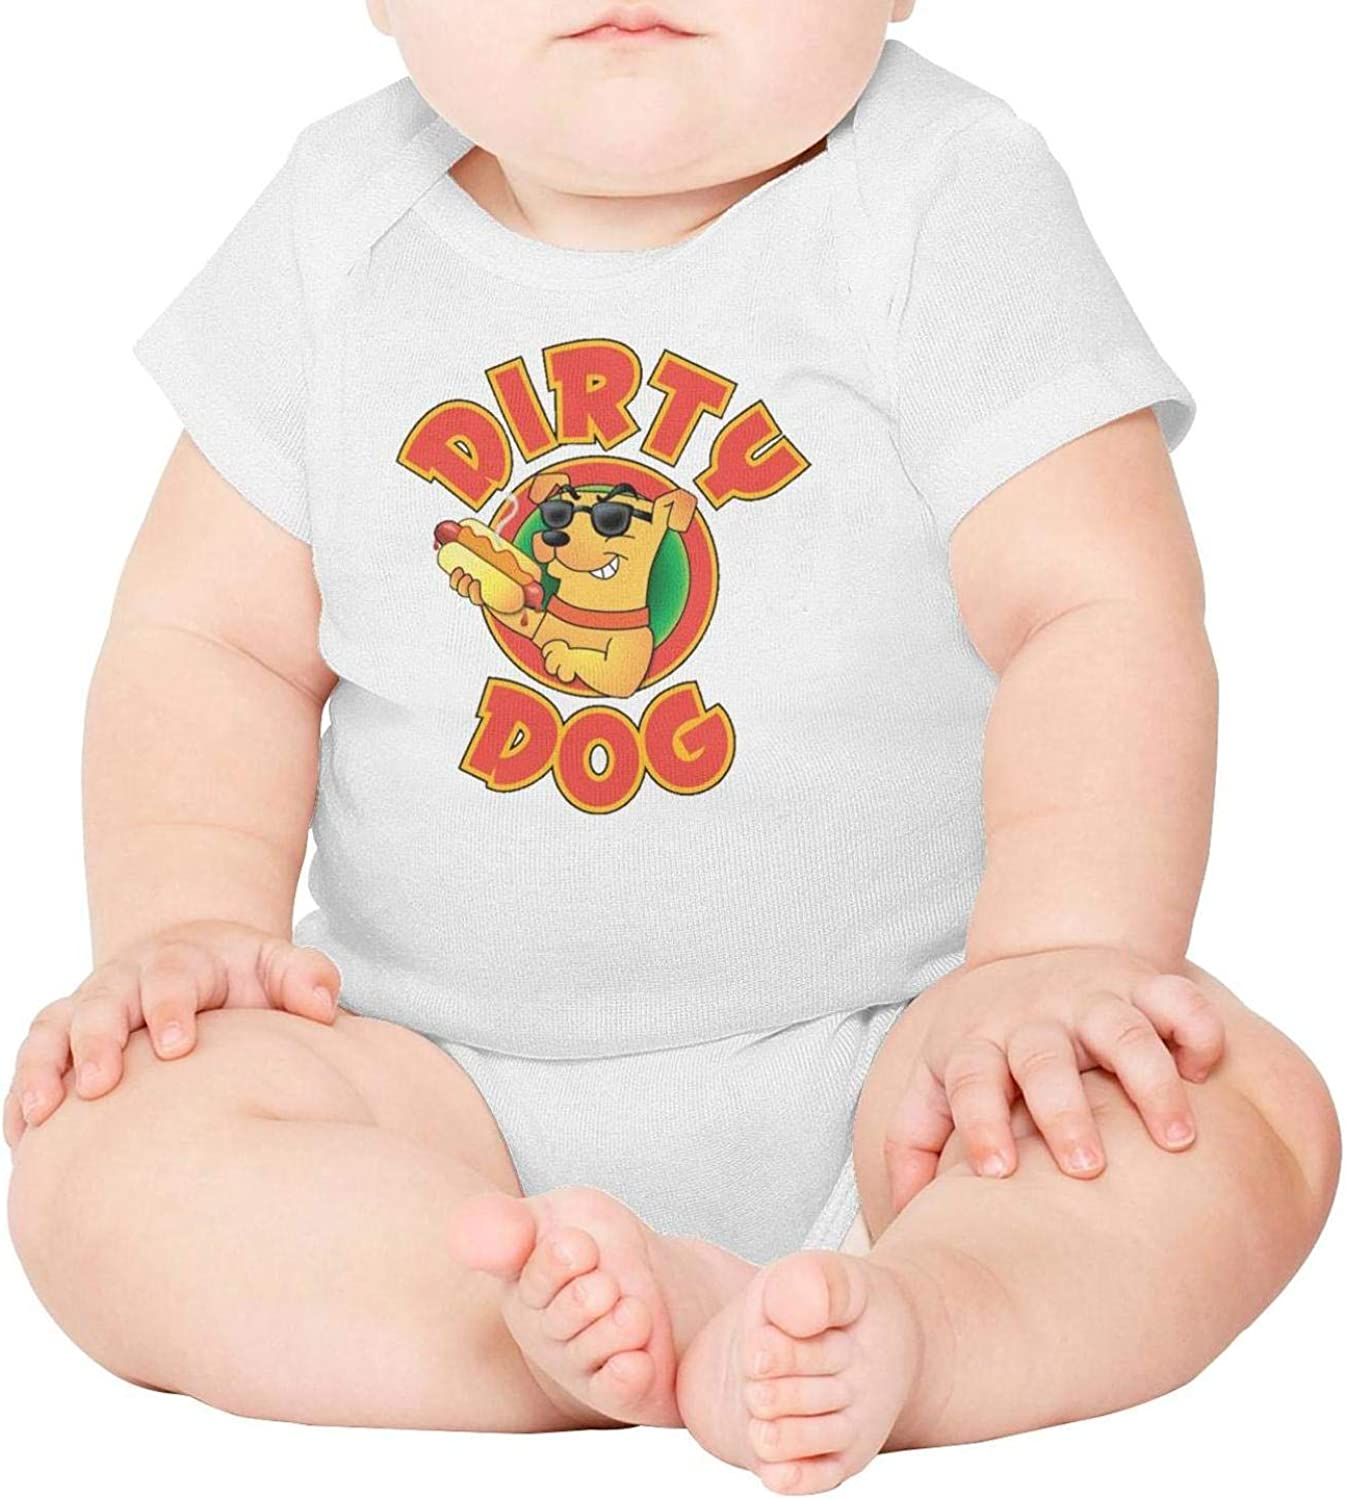 PPLOPO World Tourism Day Australia Baby Funny Short Sleeve Baby Romper Jumpsuit